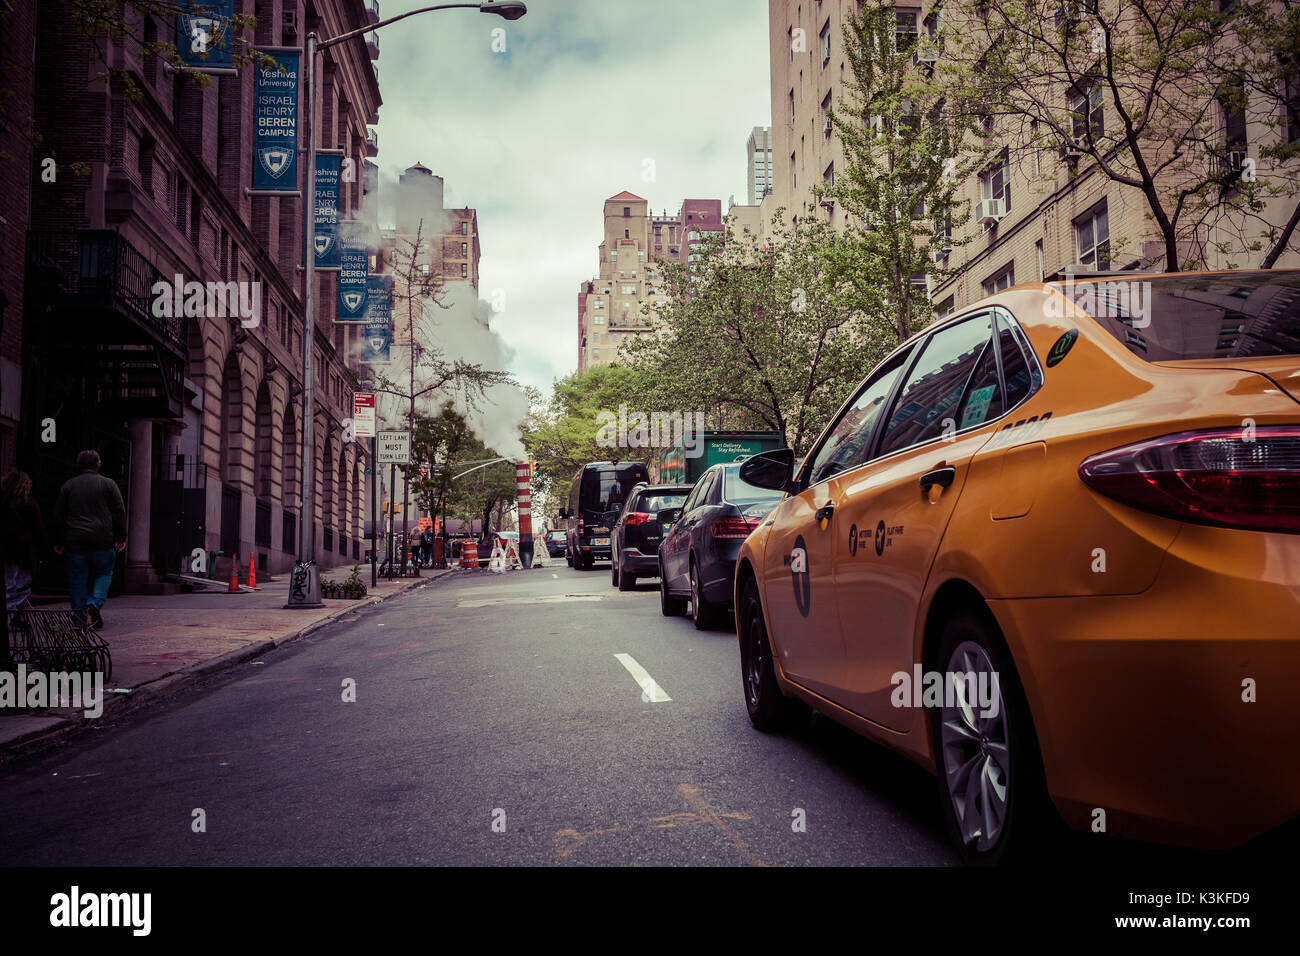 Qualm and construction work, traffic jam Streetview in Manhatten, New York, USA - Stock Image